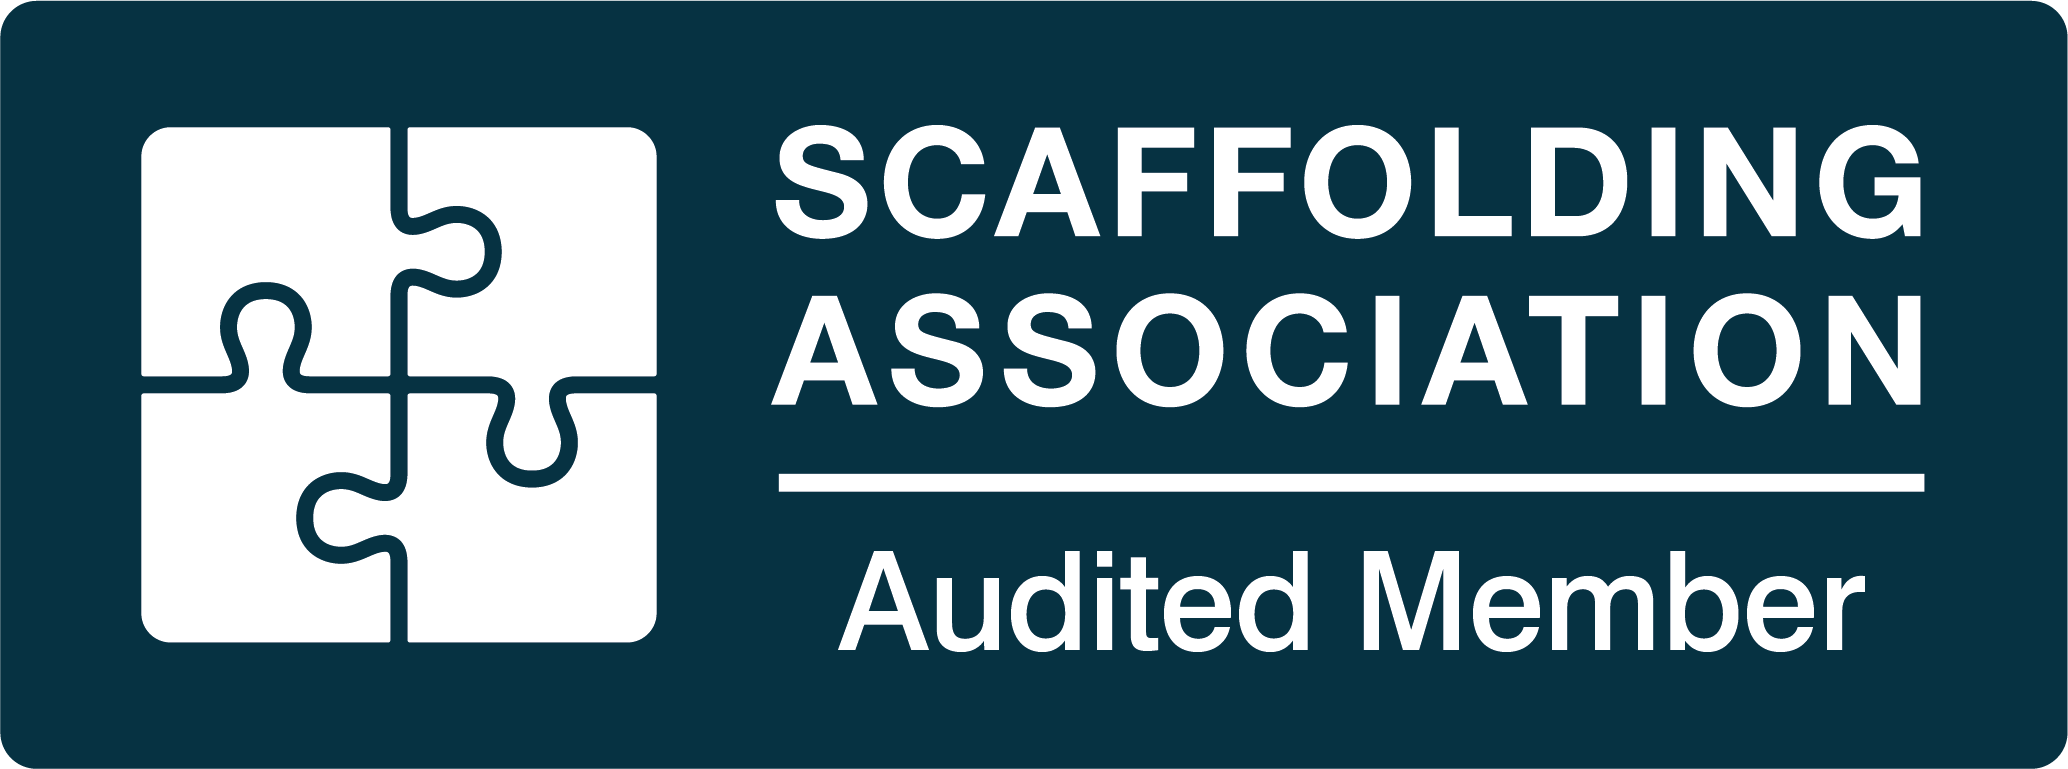 Scaffolding Association Audited Member Logo